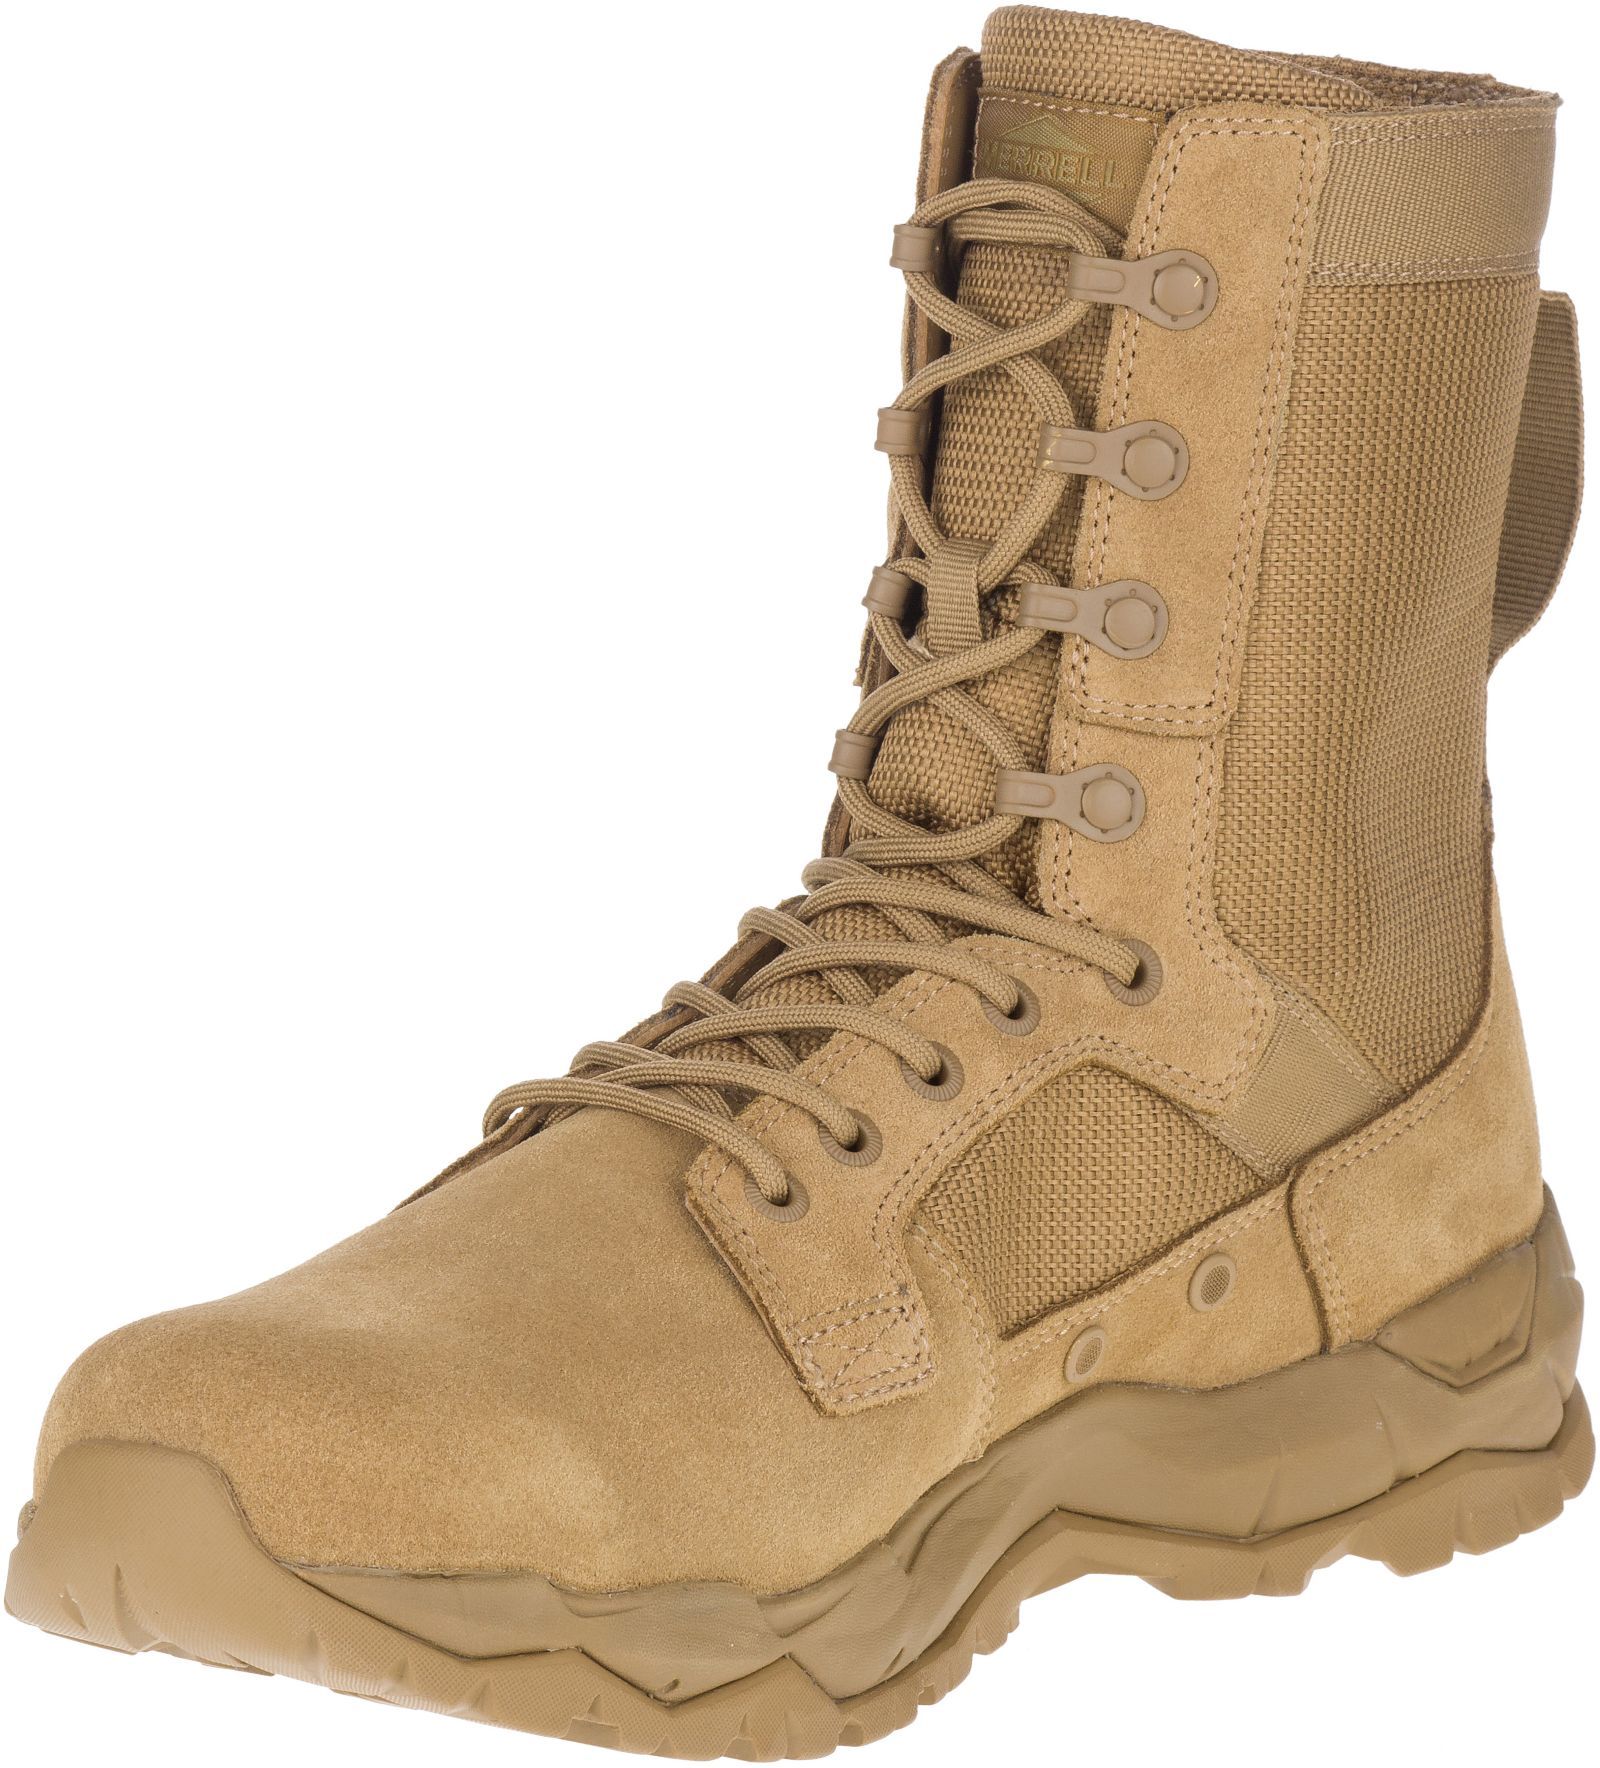 MQC 2 Tactical Boot, Coyote Tan